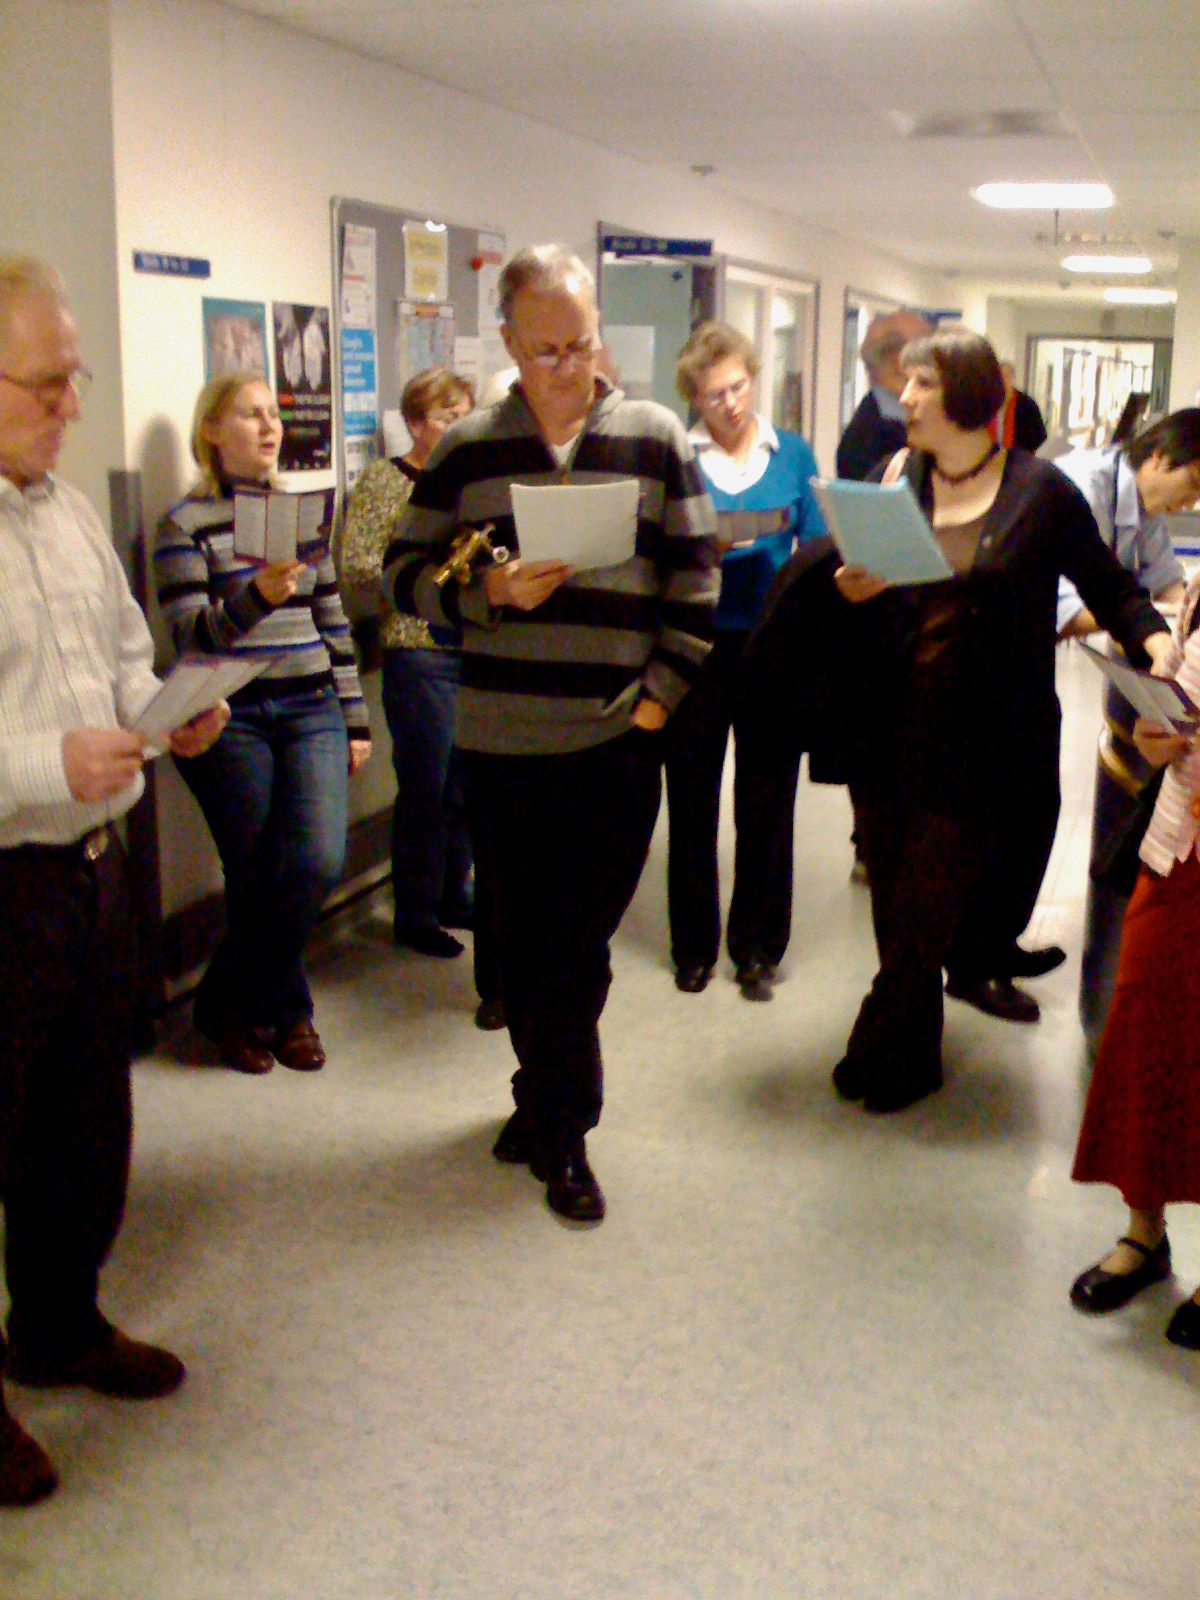 Carol singing in the wards of St George's hospital, Tooting.